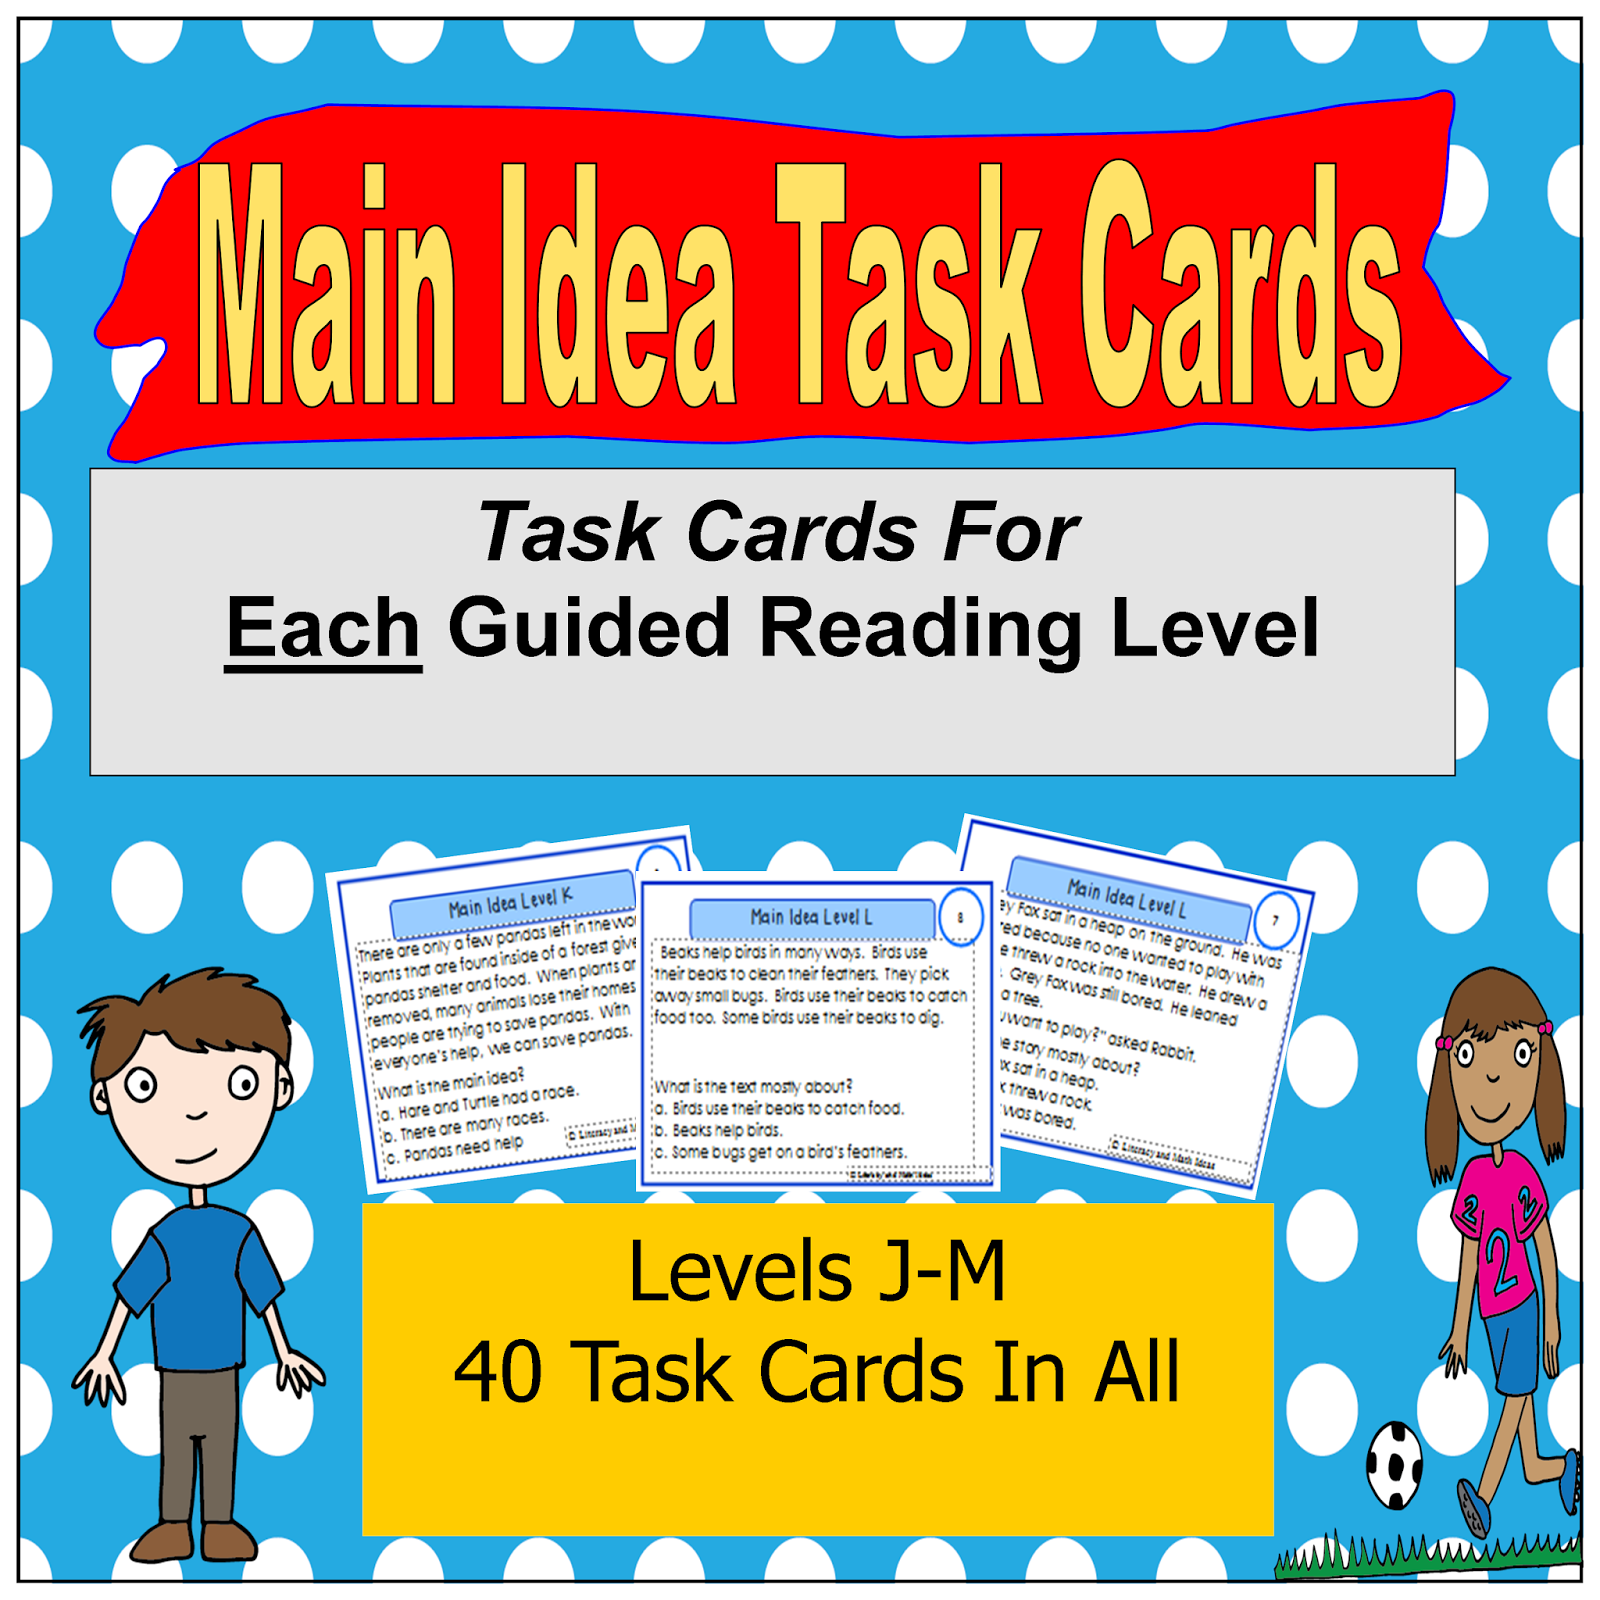 Literacy & Math Ideas: Task Cards That Are Organized By